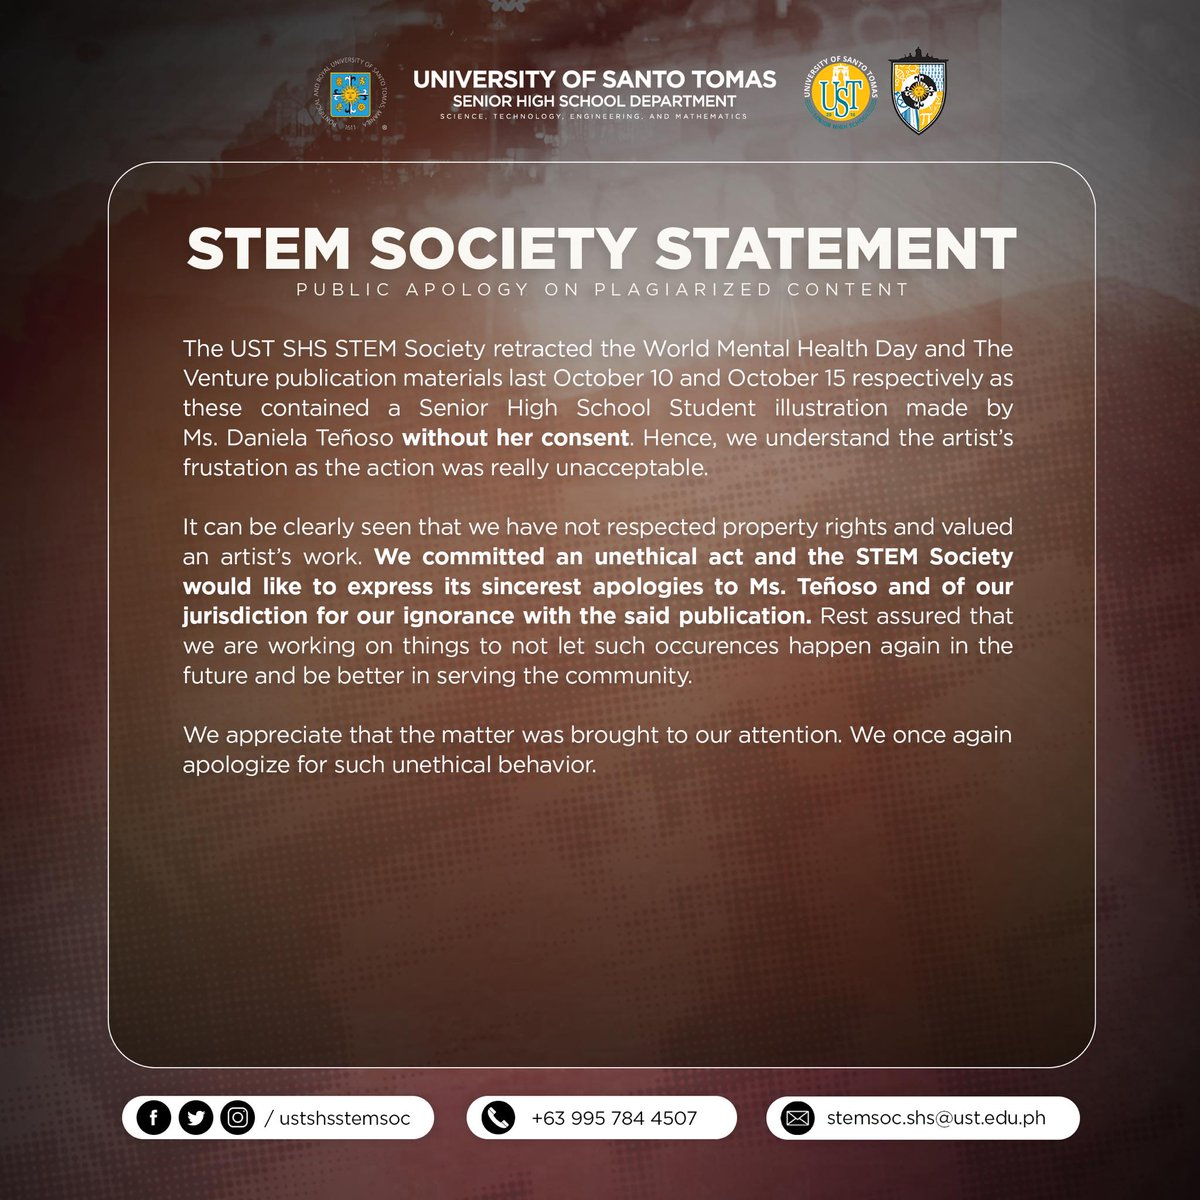 UST SHS STEM SOCIETY STATEMENT  The UST SHS STEM Society retracted the World Mental Health Day and The Venture publication materials last October 10 and October 15 respectively as these contained a Senior High School Student illustration made by Ms. Daniela Teñoso...